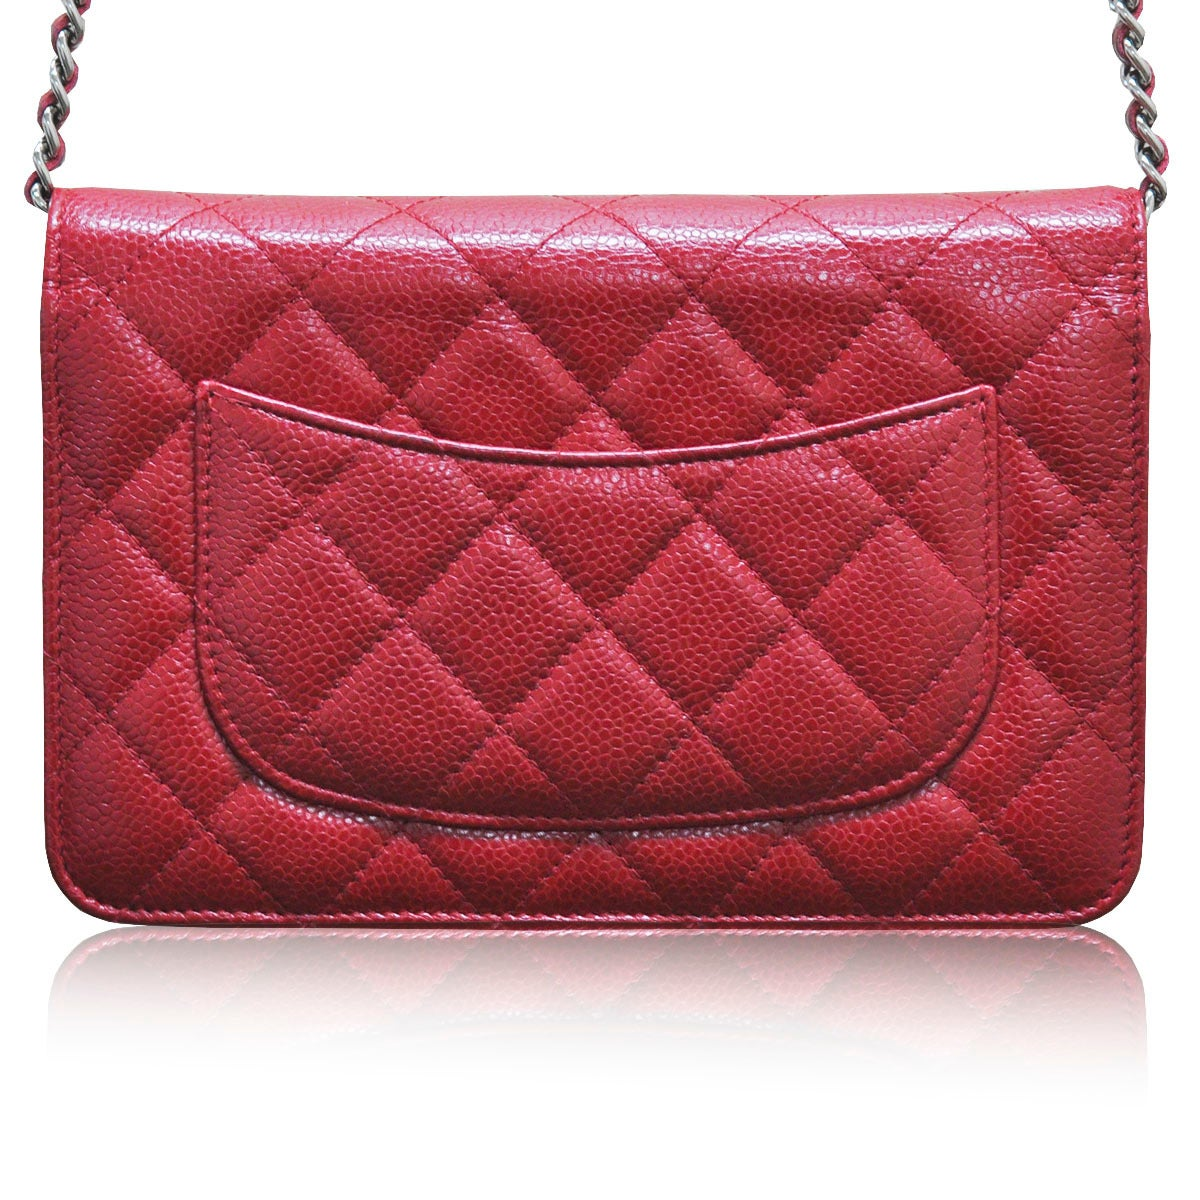 bc162475659c Company - Chanel Model - WOC Material - Red Caviar Lining - Red  Measurements - 7.5. Chanel Red Caviar Leather WOC Wallet on Chain Silver  Hardware ...